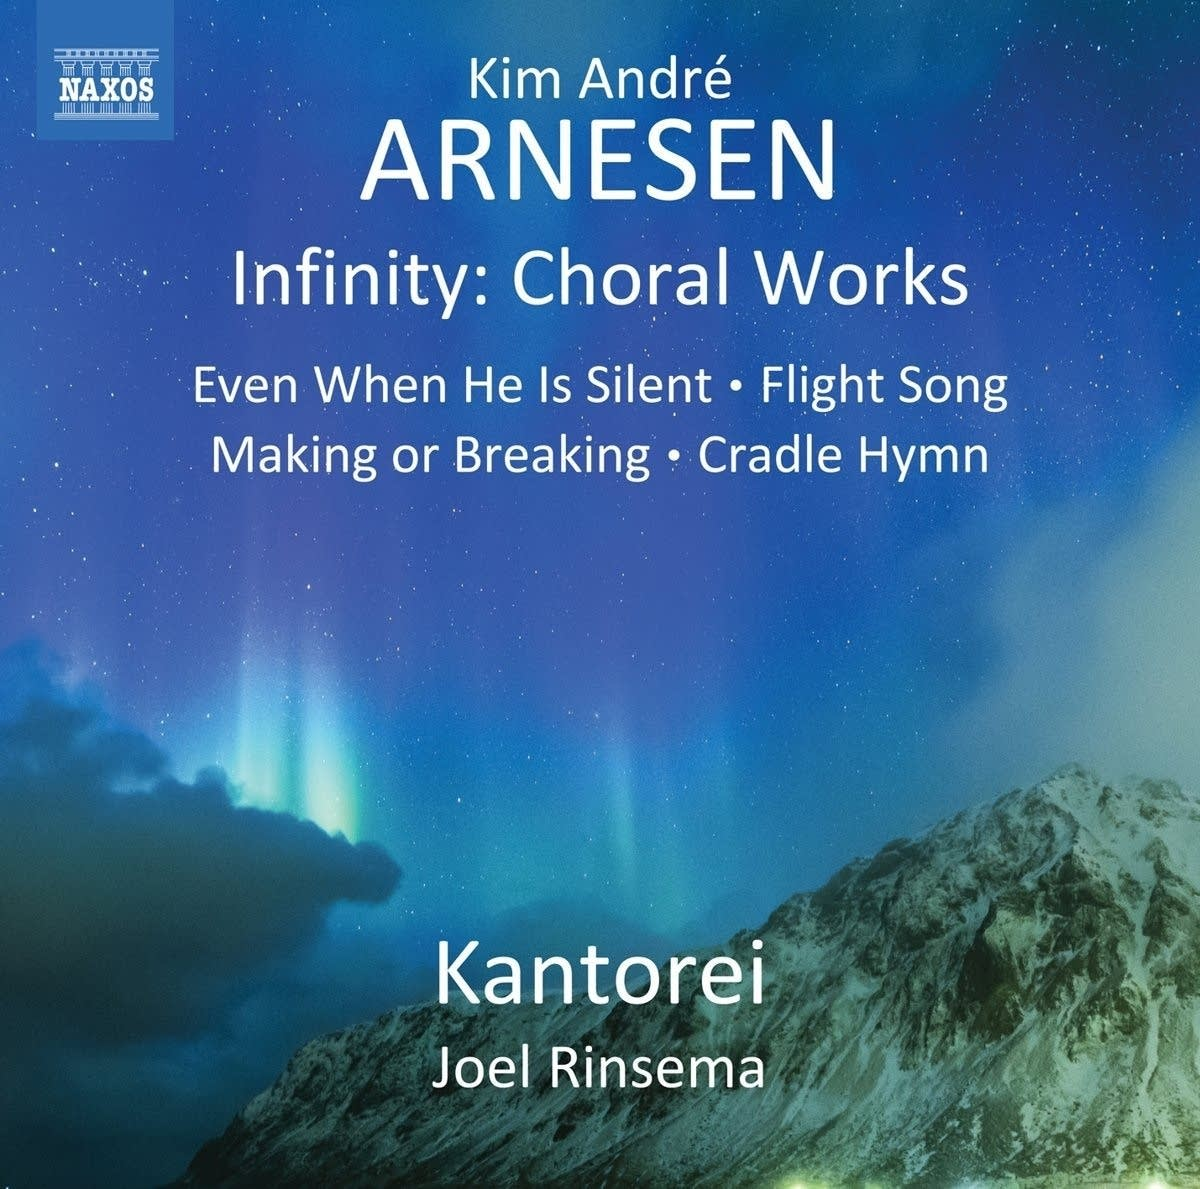 Infinity: Choral works of Kim Andre Arnesen